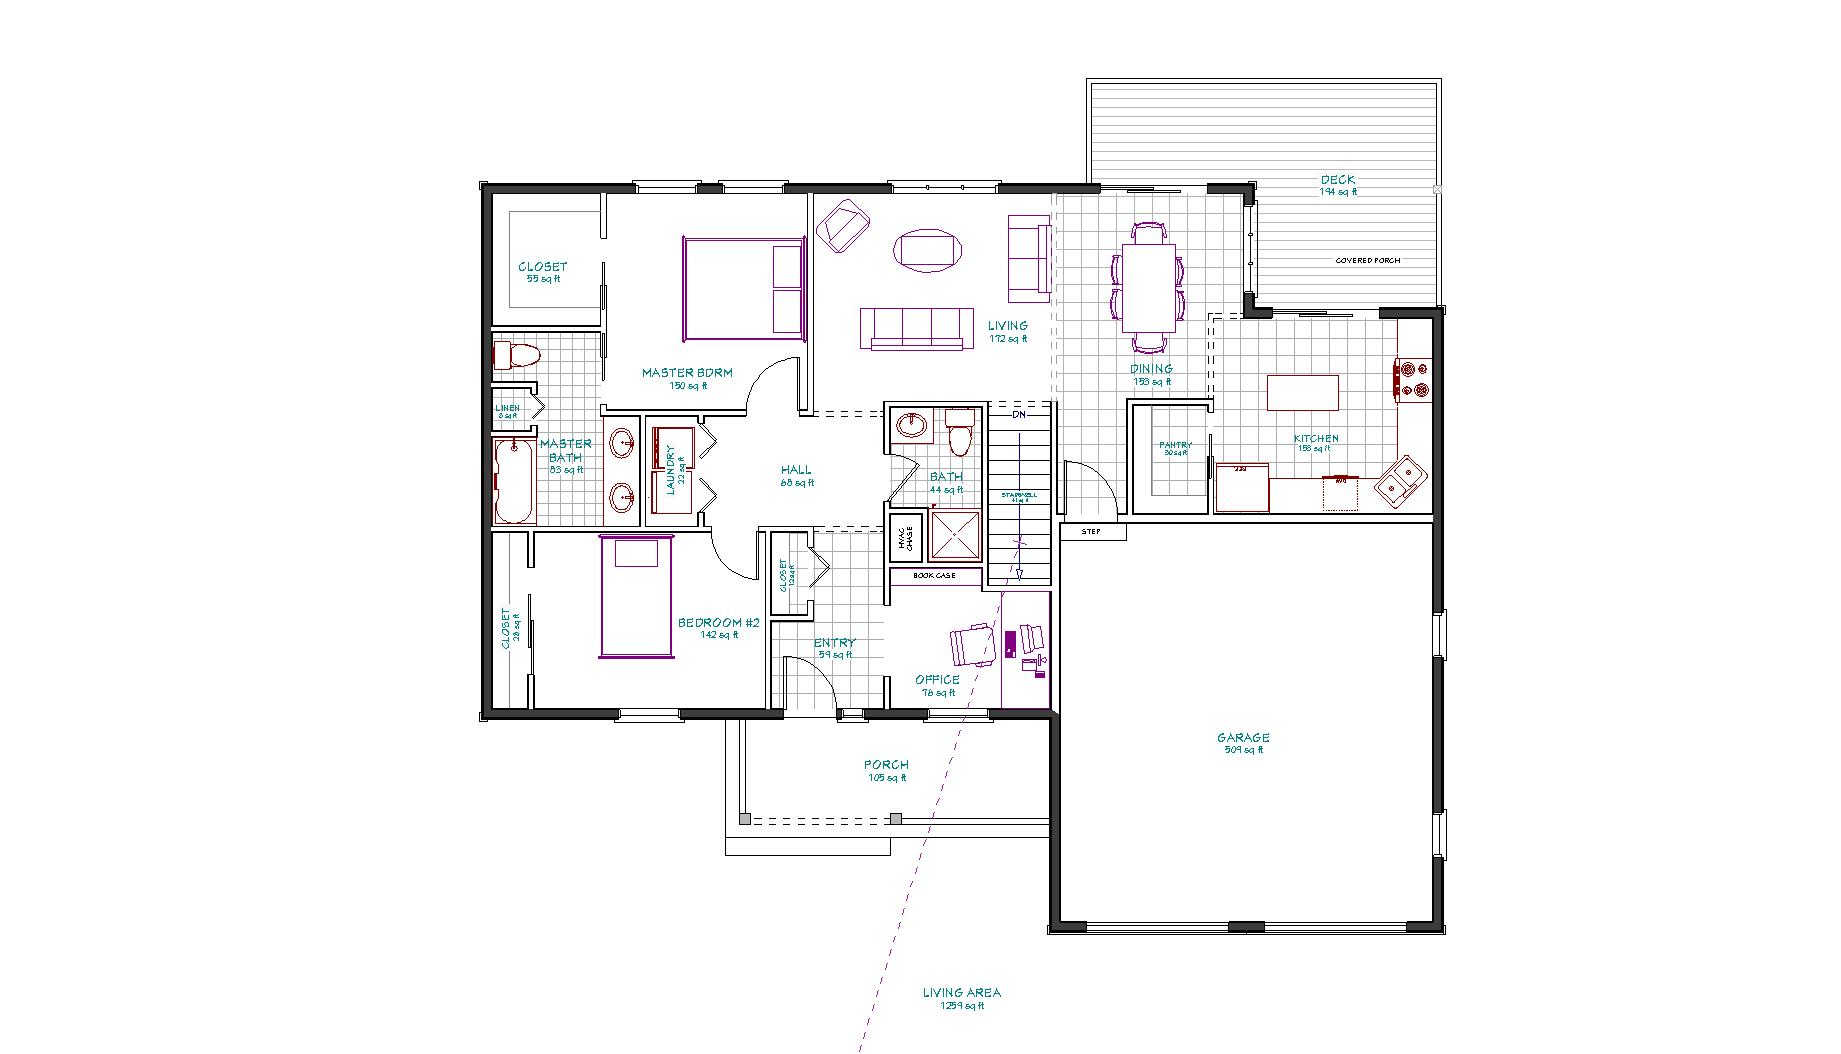 Basement house plans with basement for 2000 sq ft house plans with basement